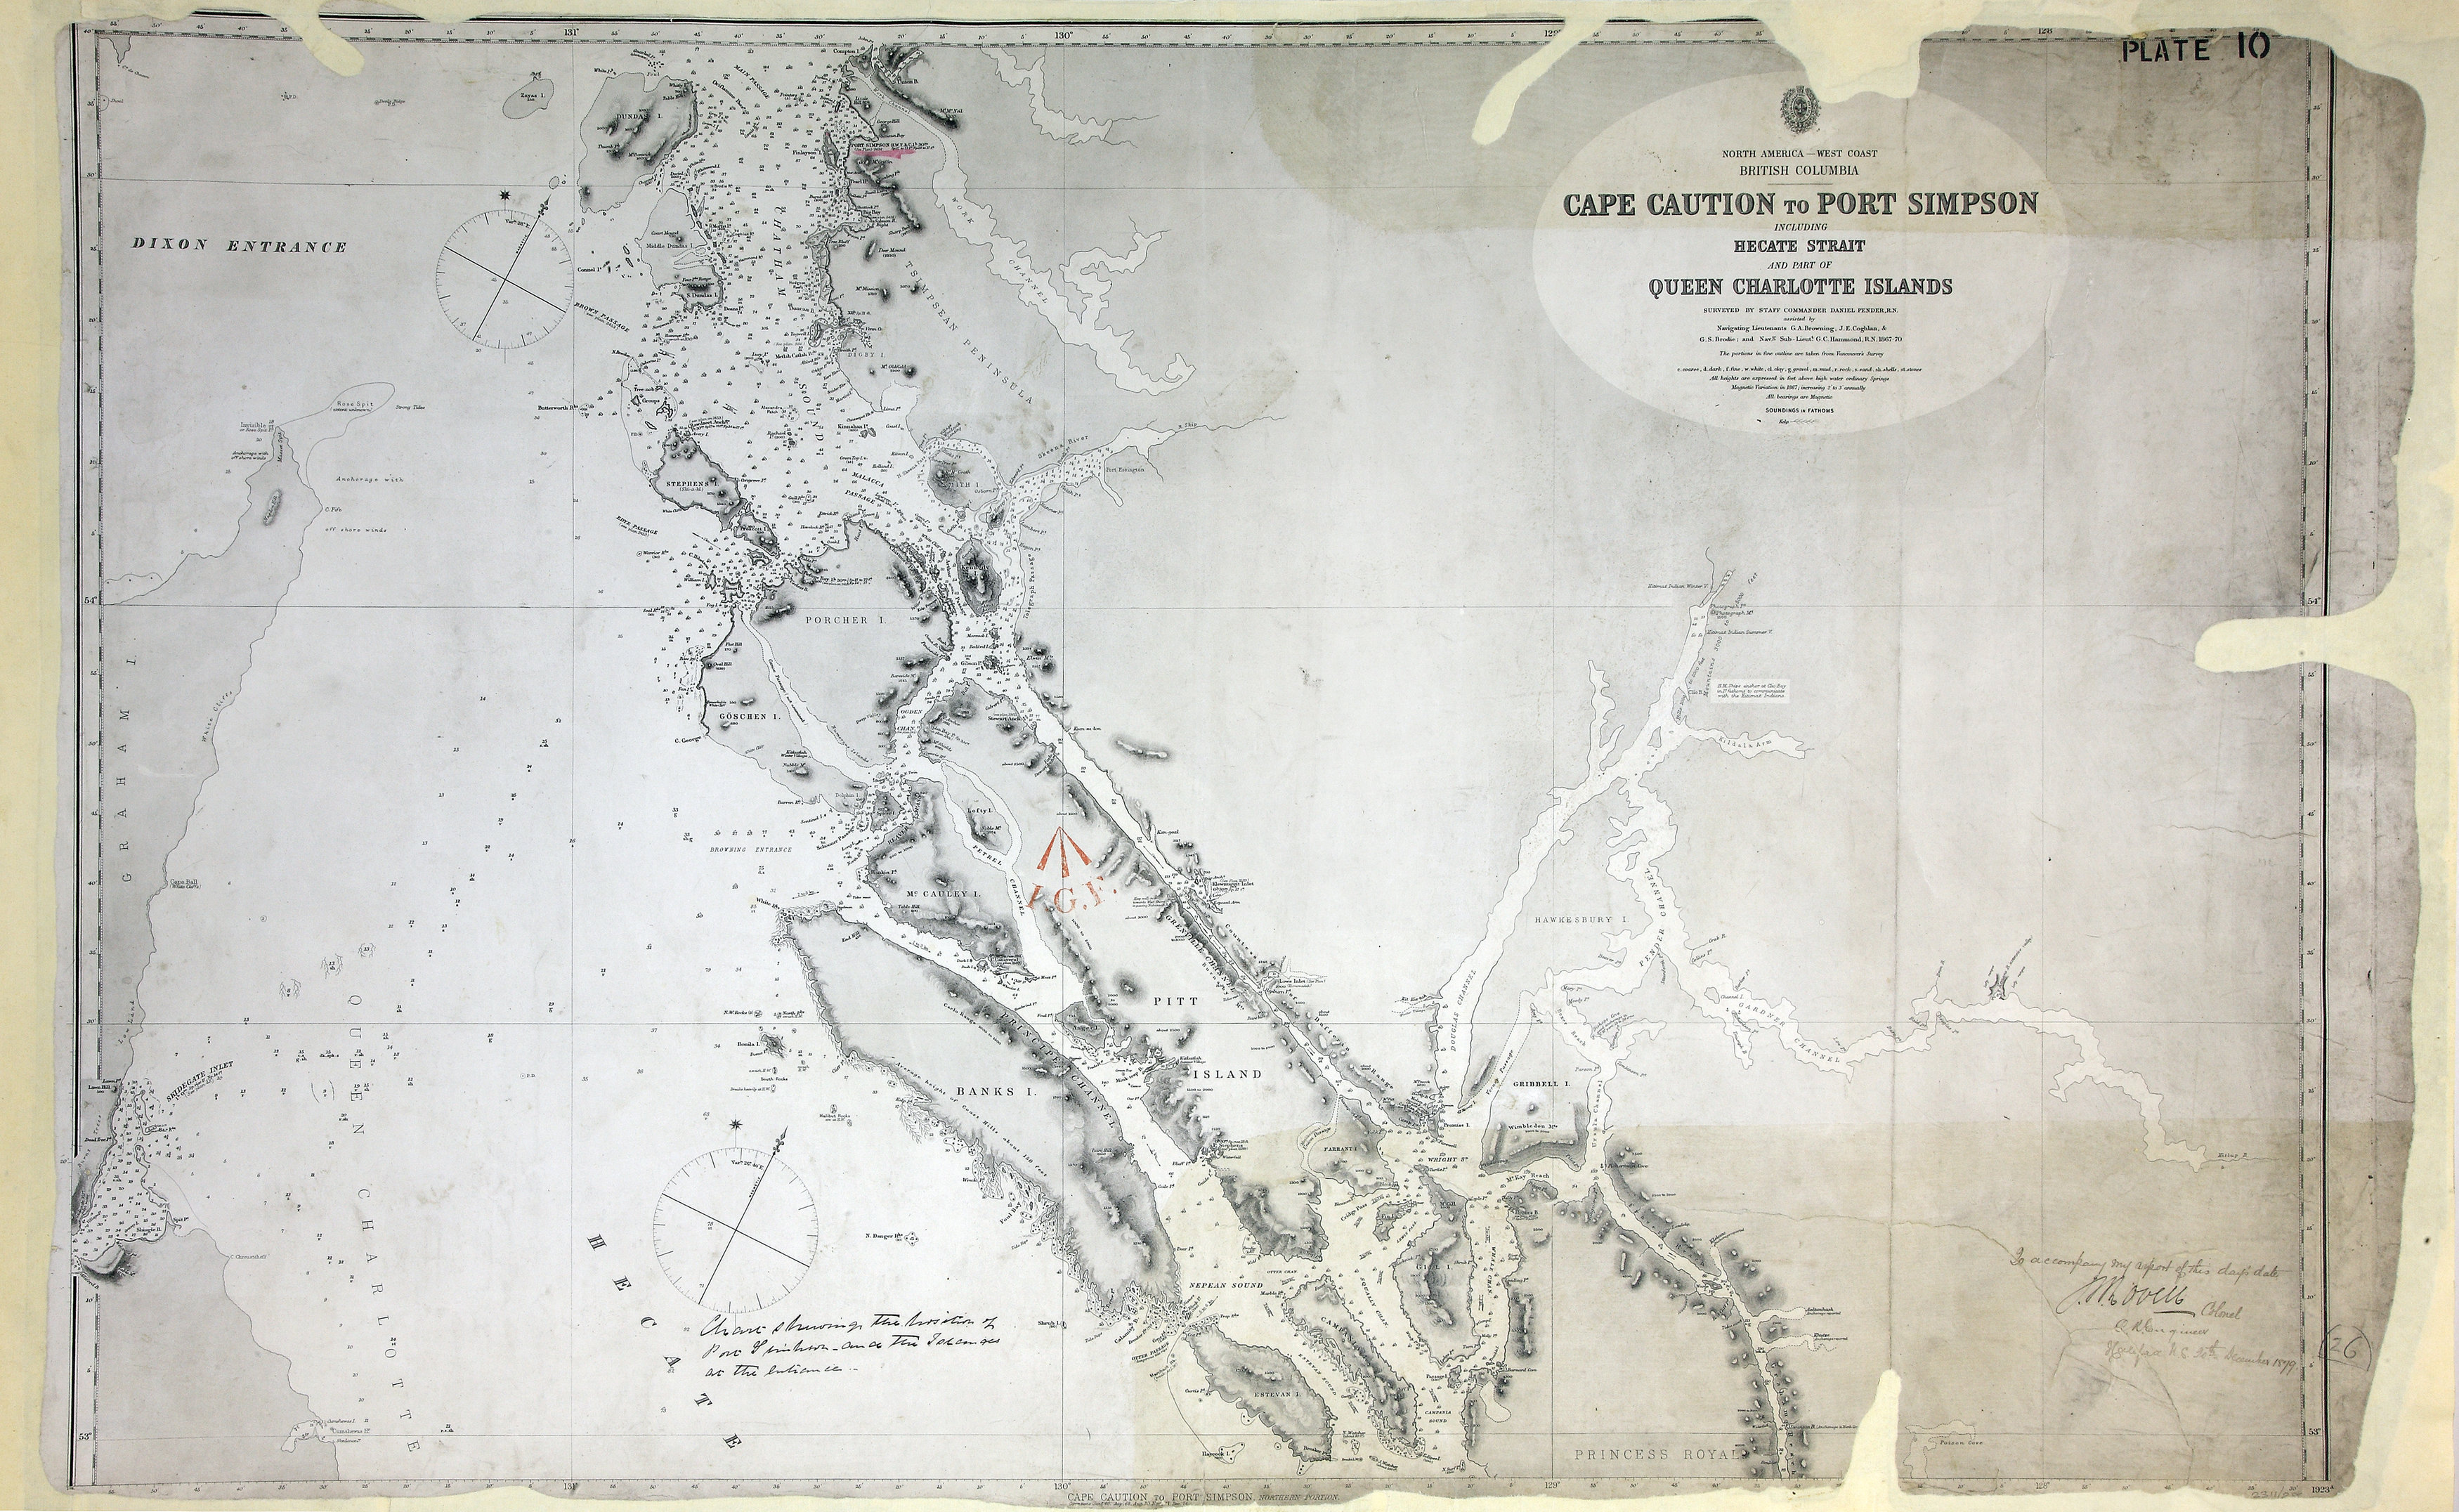 Queen Charlotte Islands Map on